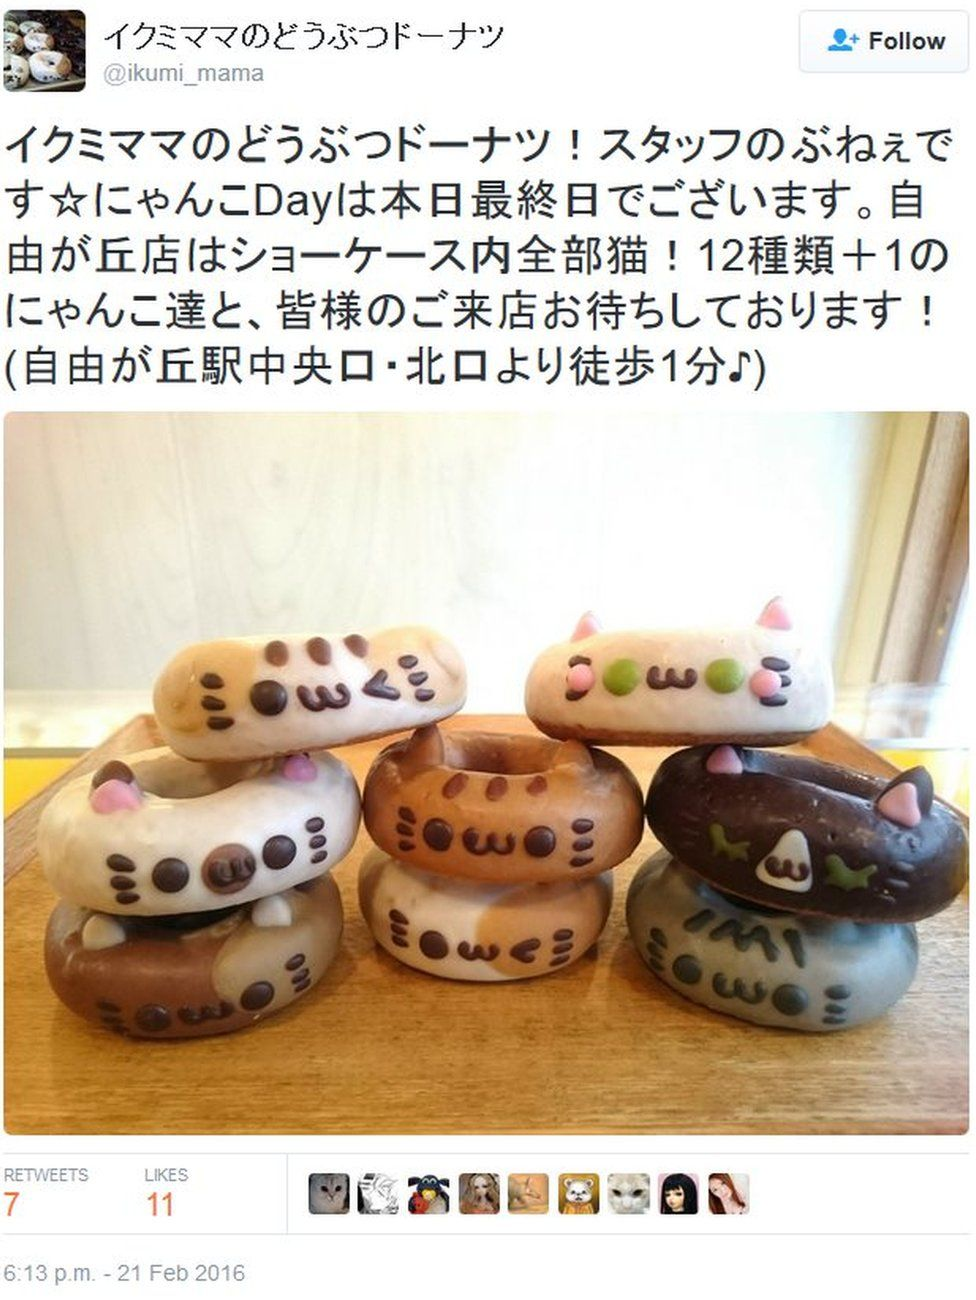 Tweet by @ikumi_mama on special donuts for Cat Day